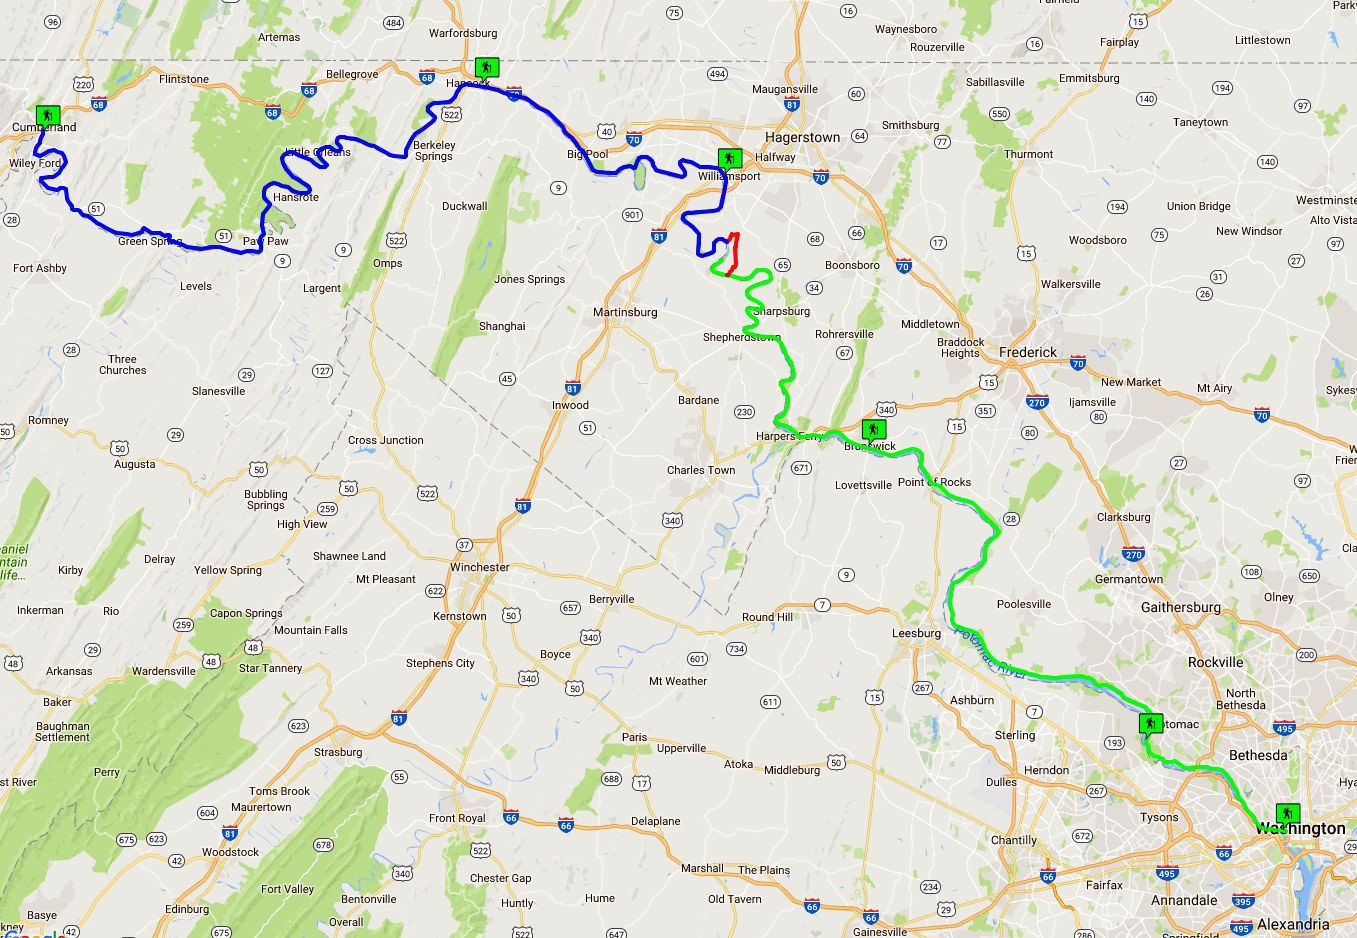 C & O Canal Maps and Visitor Center Locations